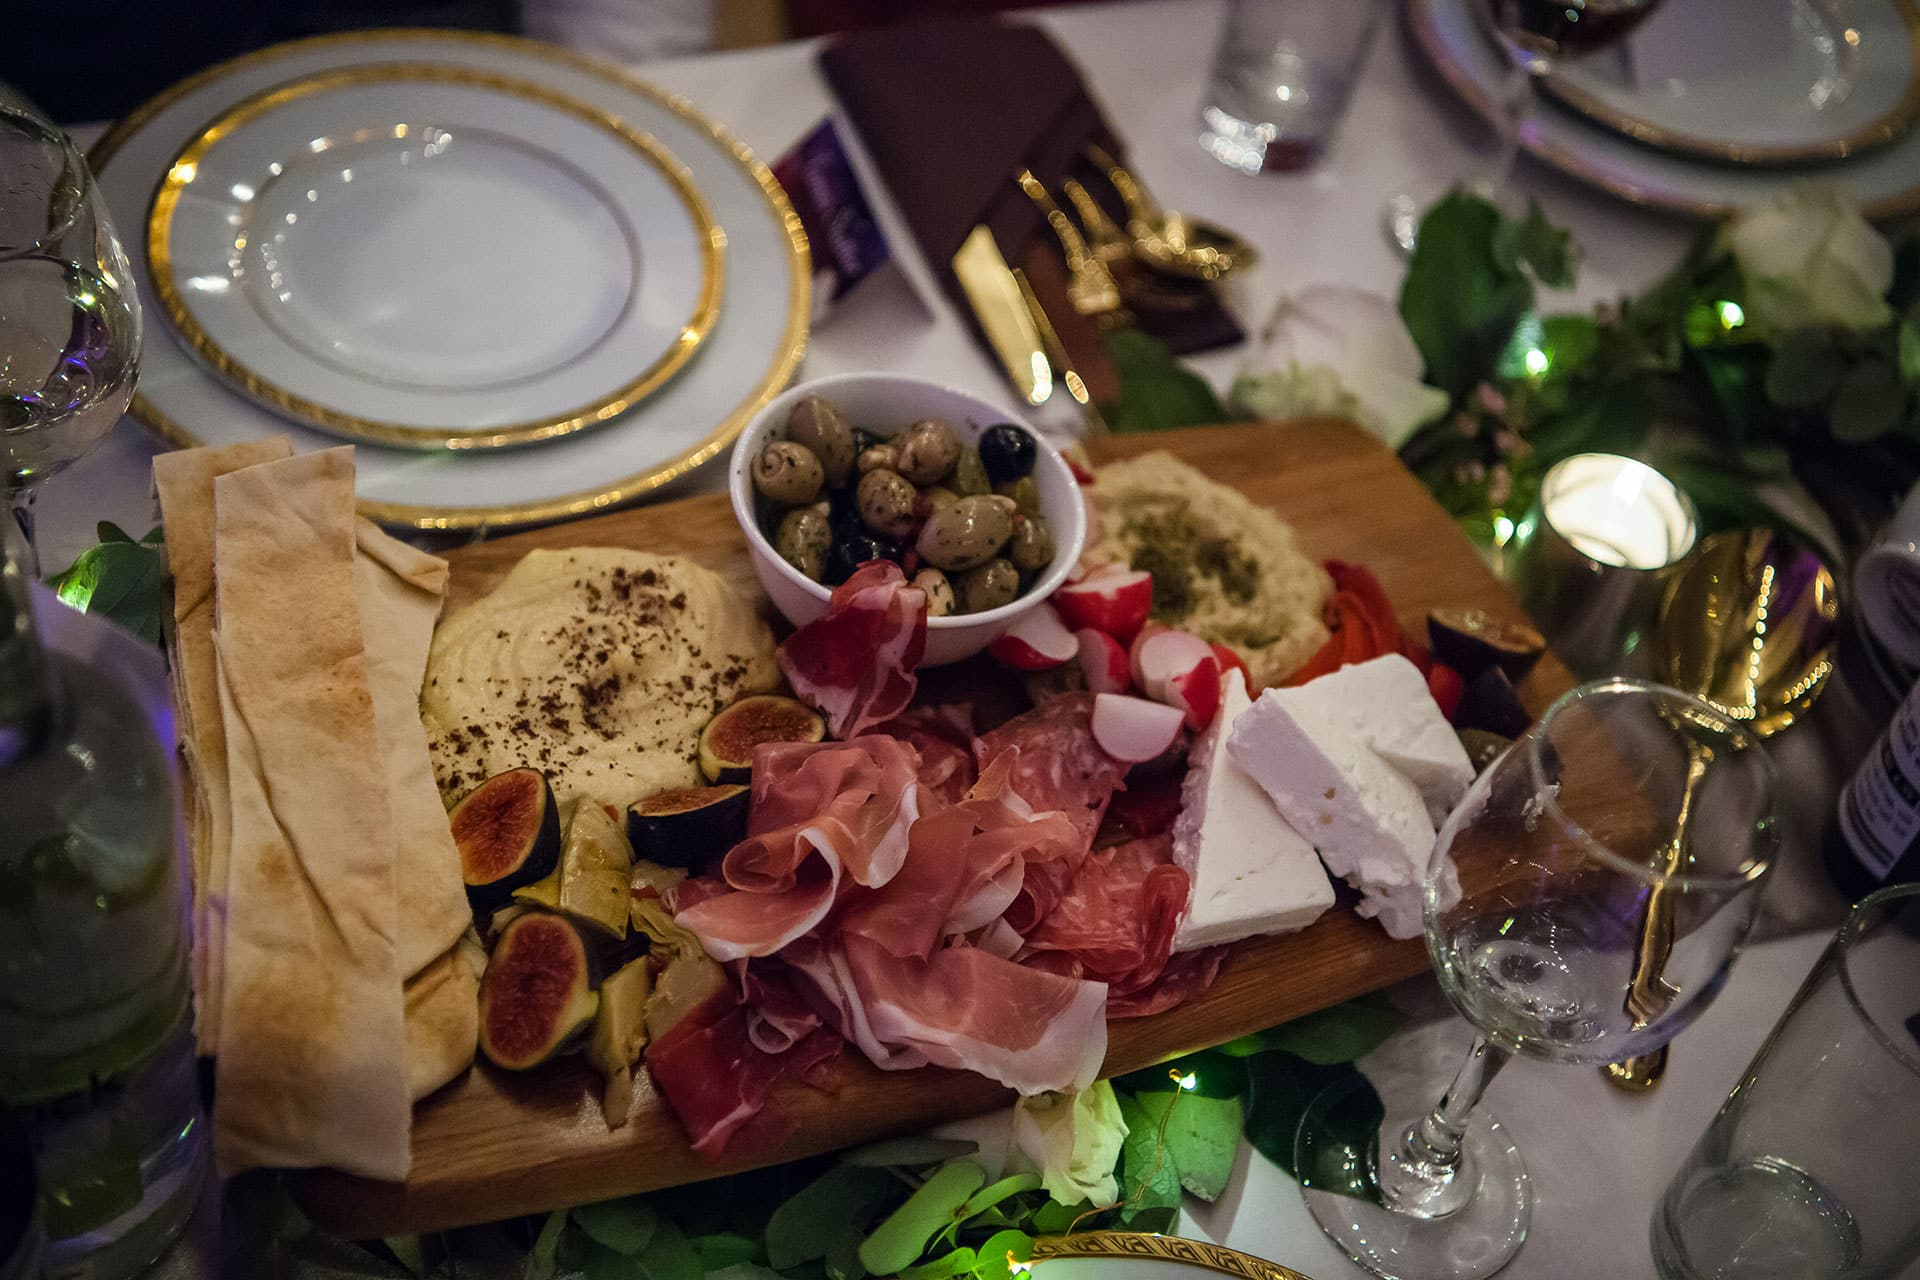 Wedding food platter with charcuterie, cheese and flatbread